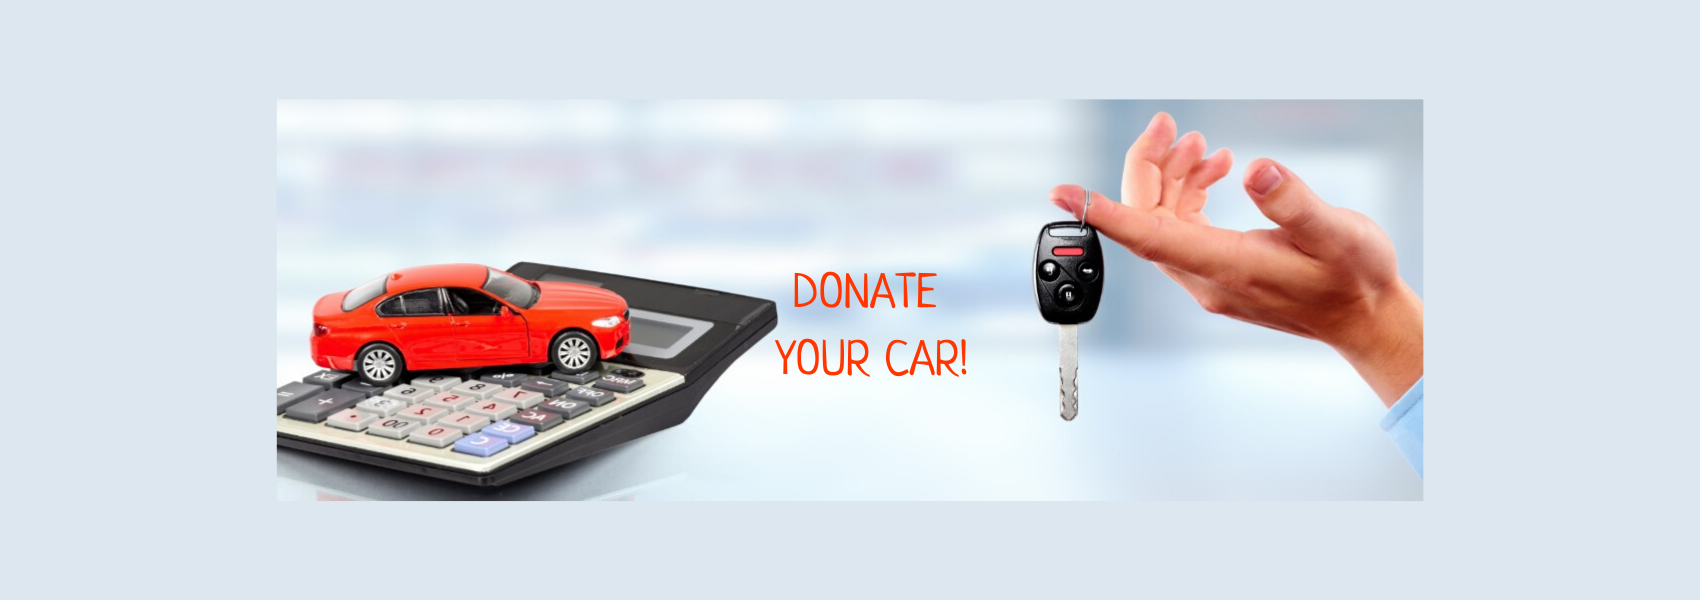 All car donations are tax deductible!